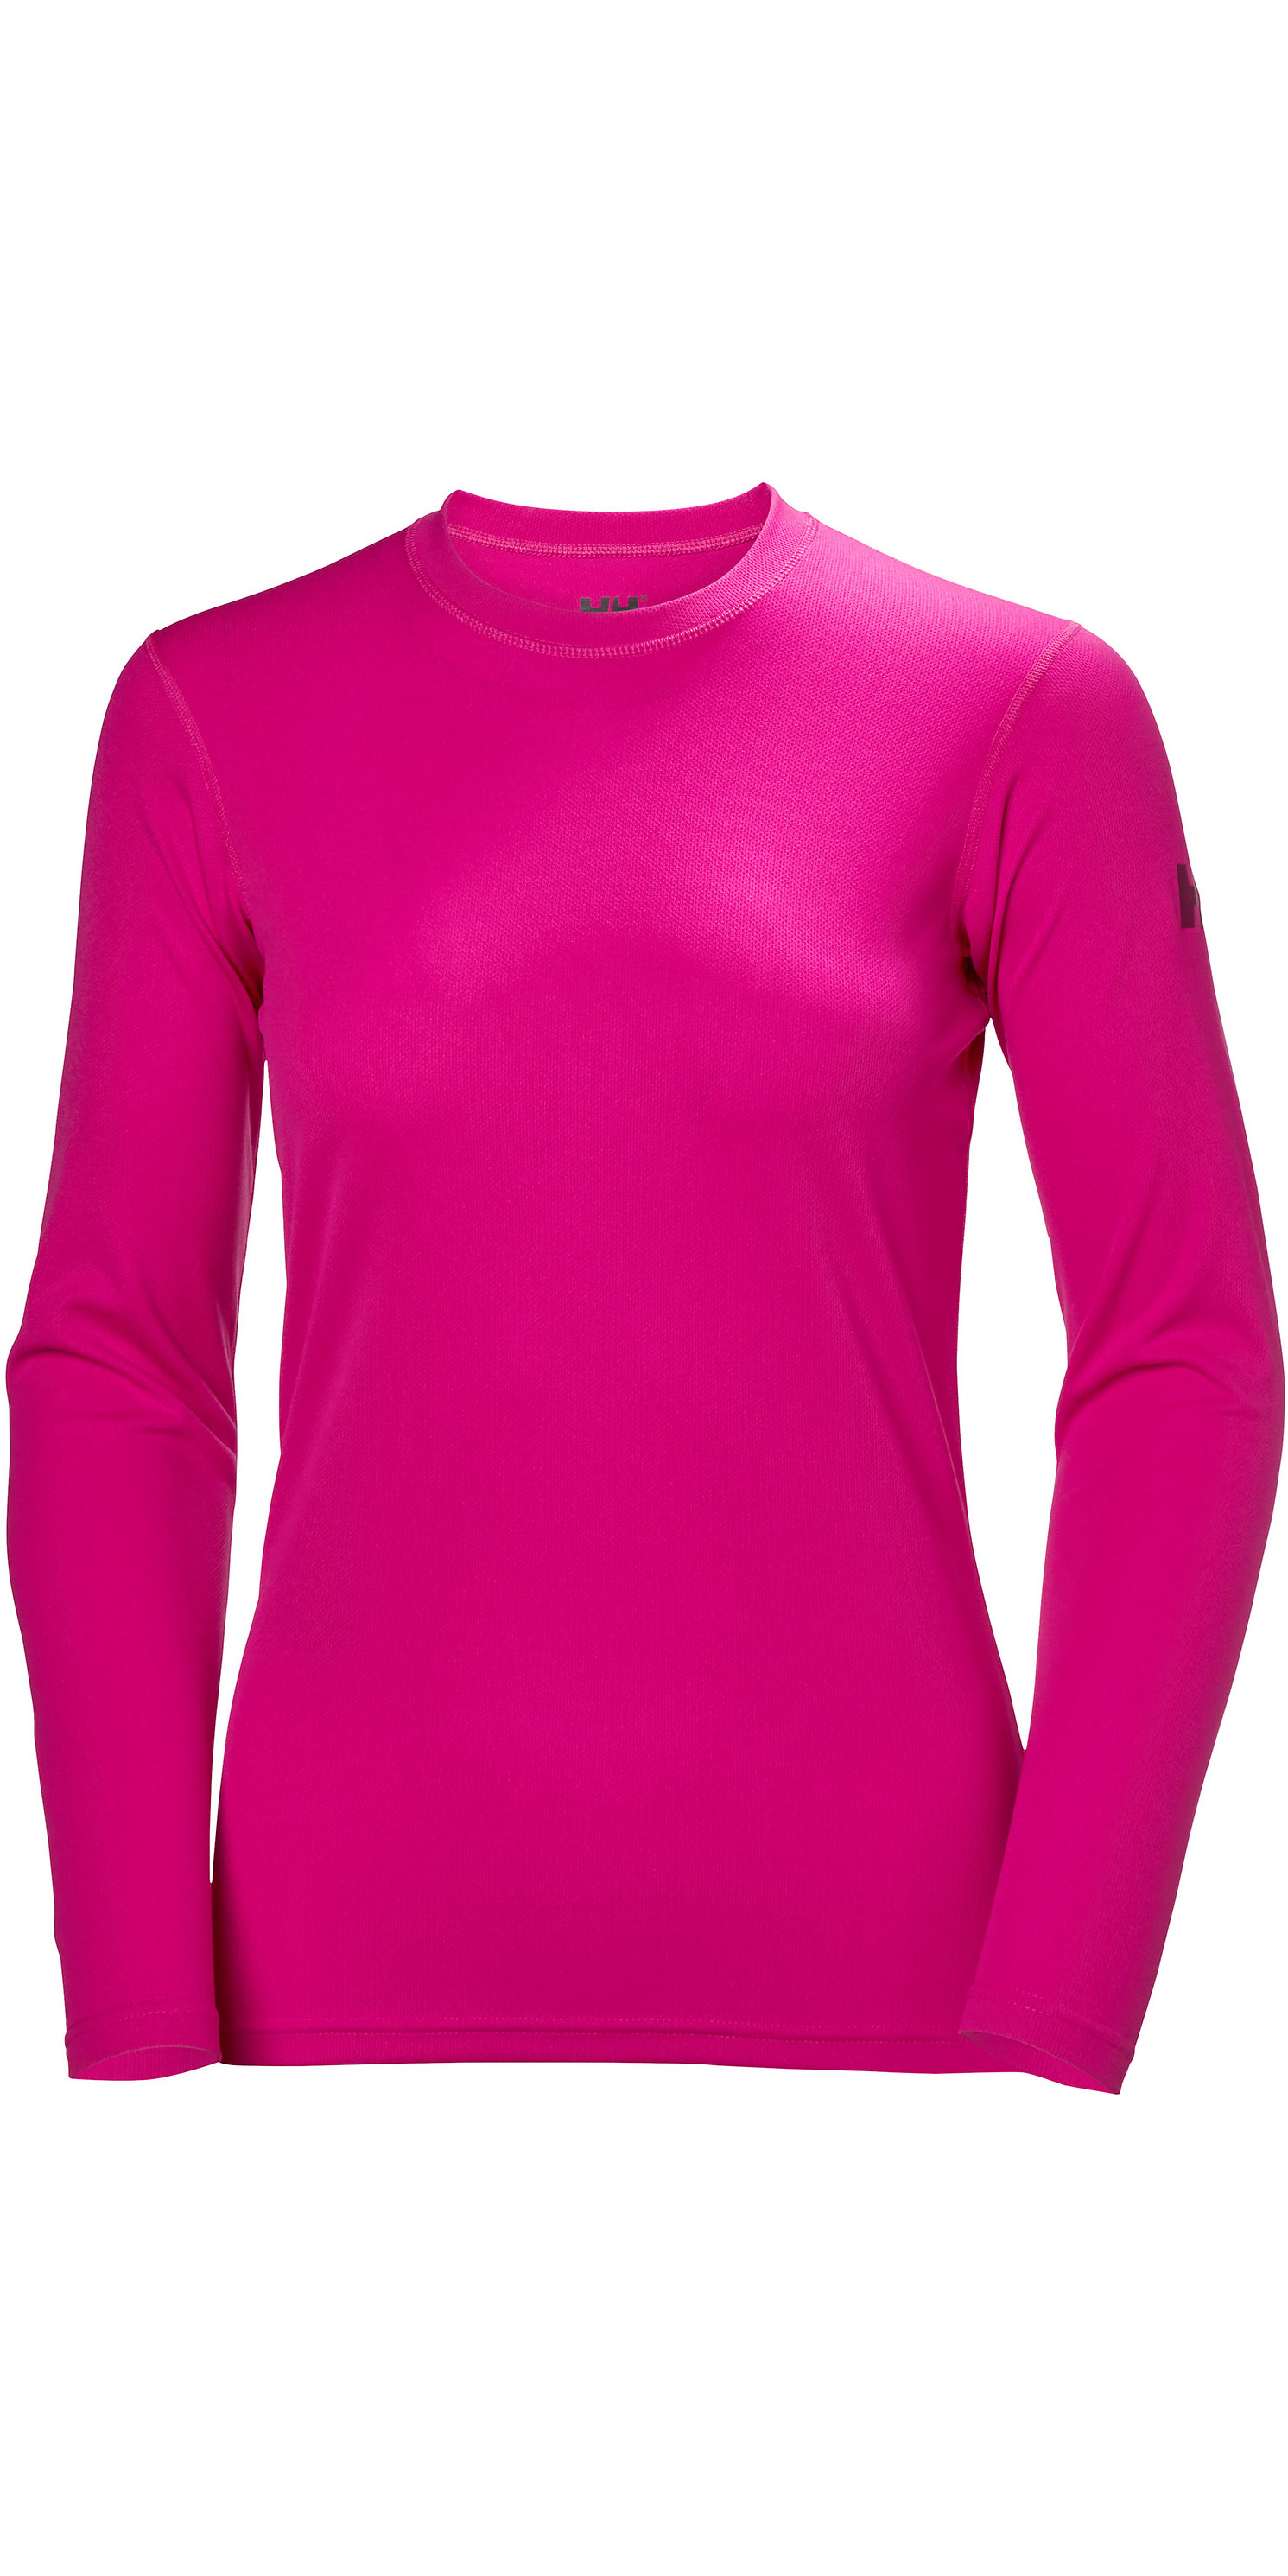 0d2826baba367d 2019 Helly Hansen Womens Tech Crew Long Sleeve Base Layer Dragon Fruit  48374 - Thermal Base | Wetsuit Outlet